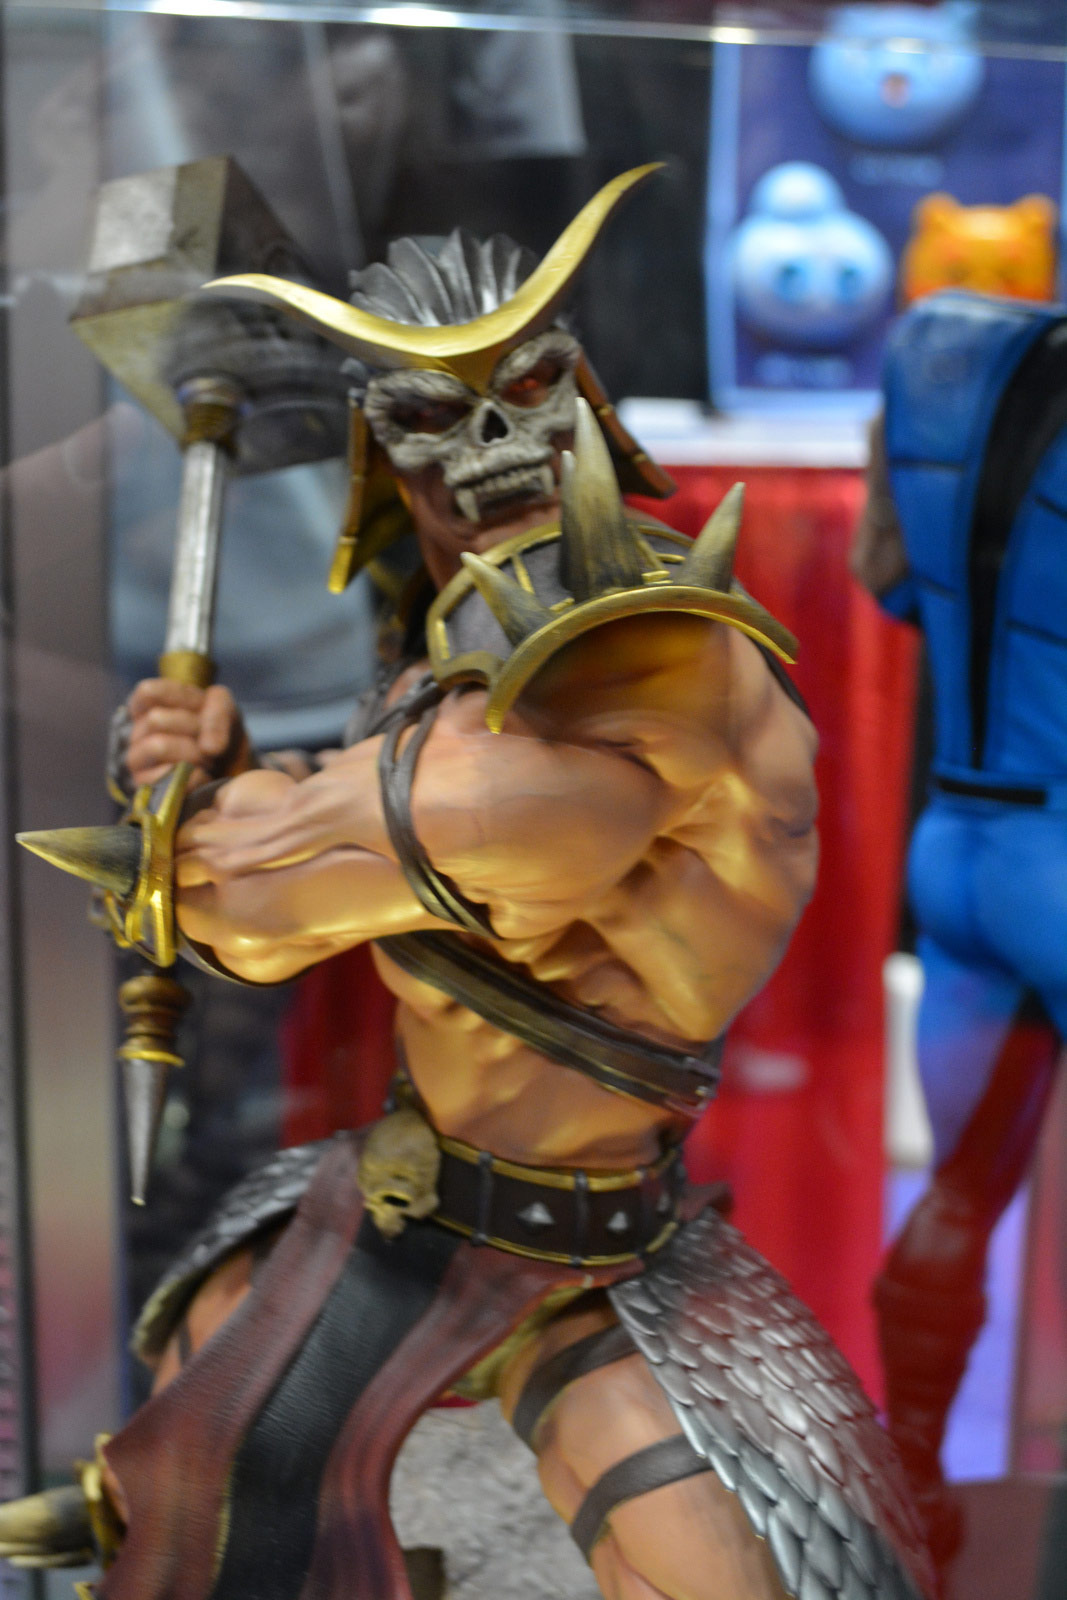 Statue photo from the 2013 New York Comic-Con by Jason24cf #2